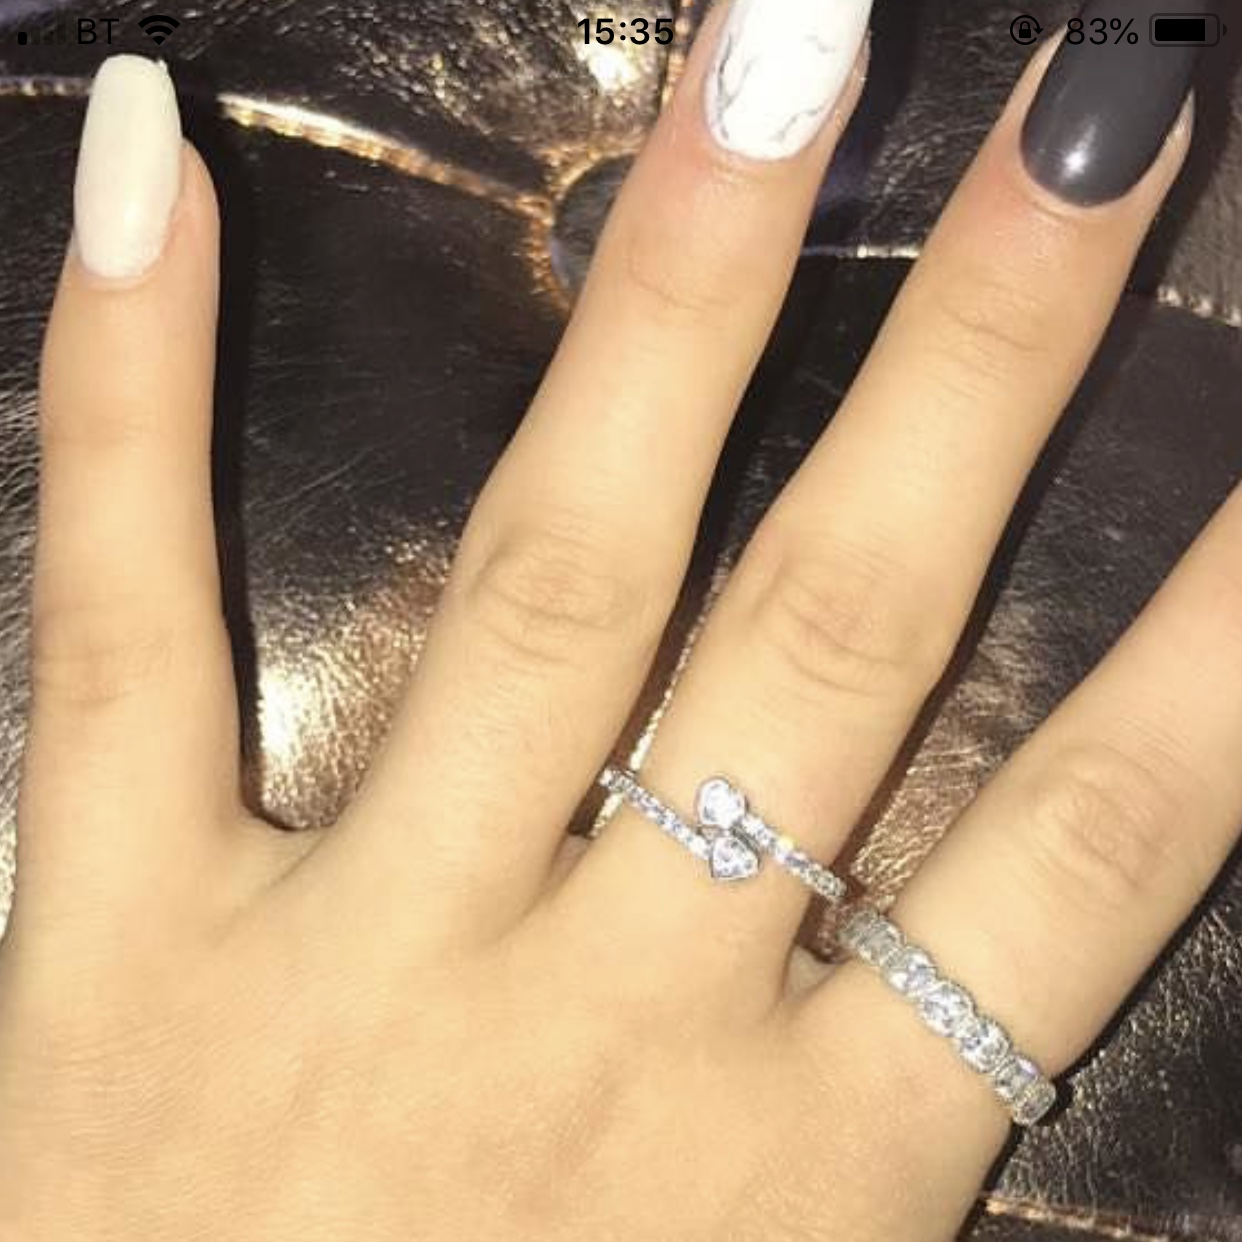 a3a33028a368a 💍 FOREVER HEARTS RING PANDORA 💍 Size 52 Barley... - Depop